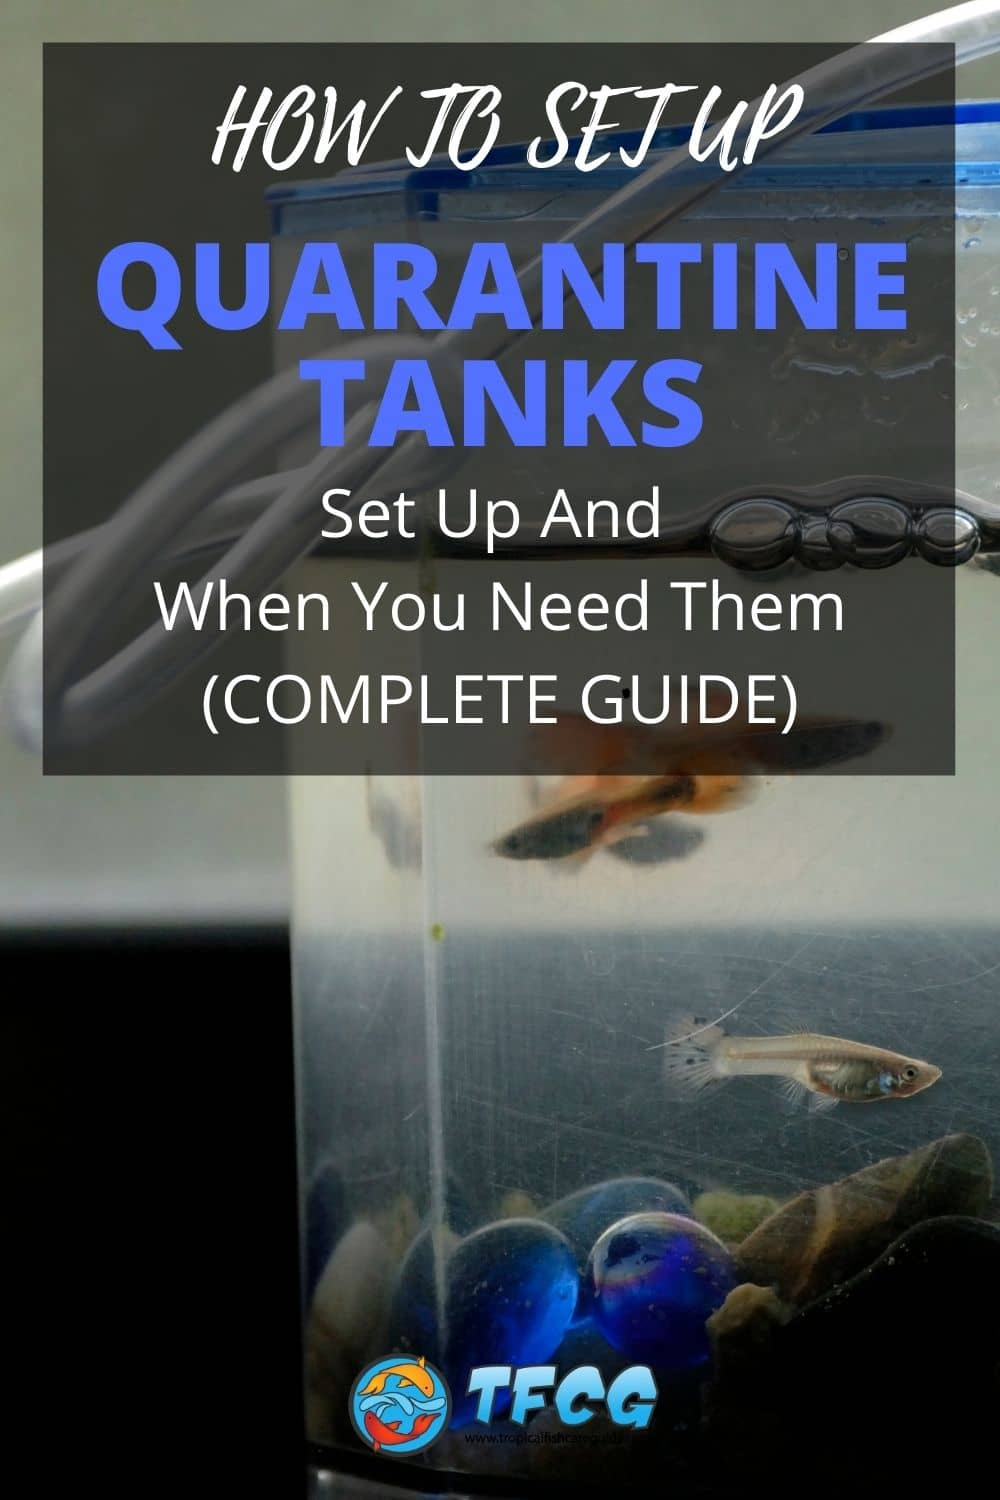 Quarantine Tanks - Set Up And When You Need Them (Complete Guide)